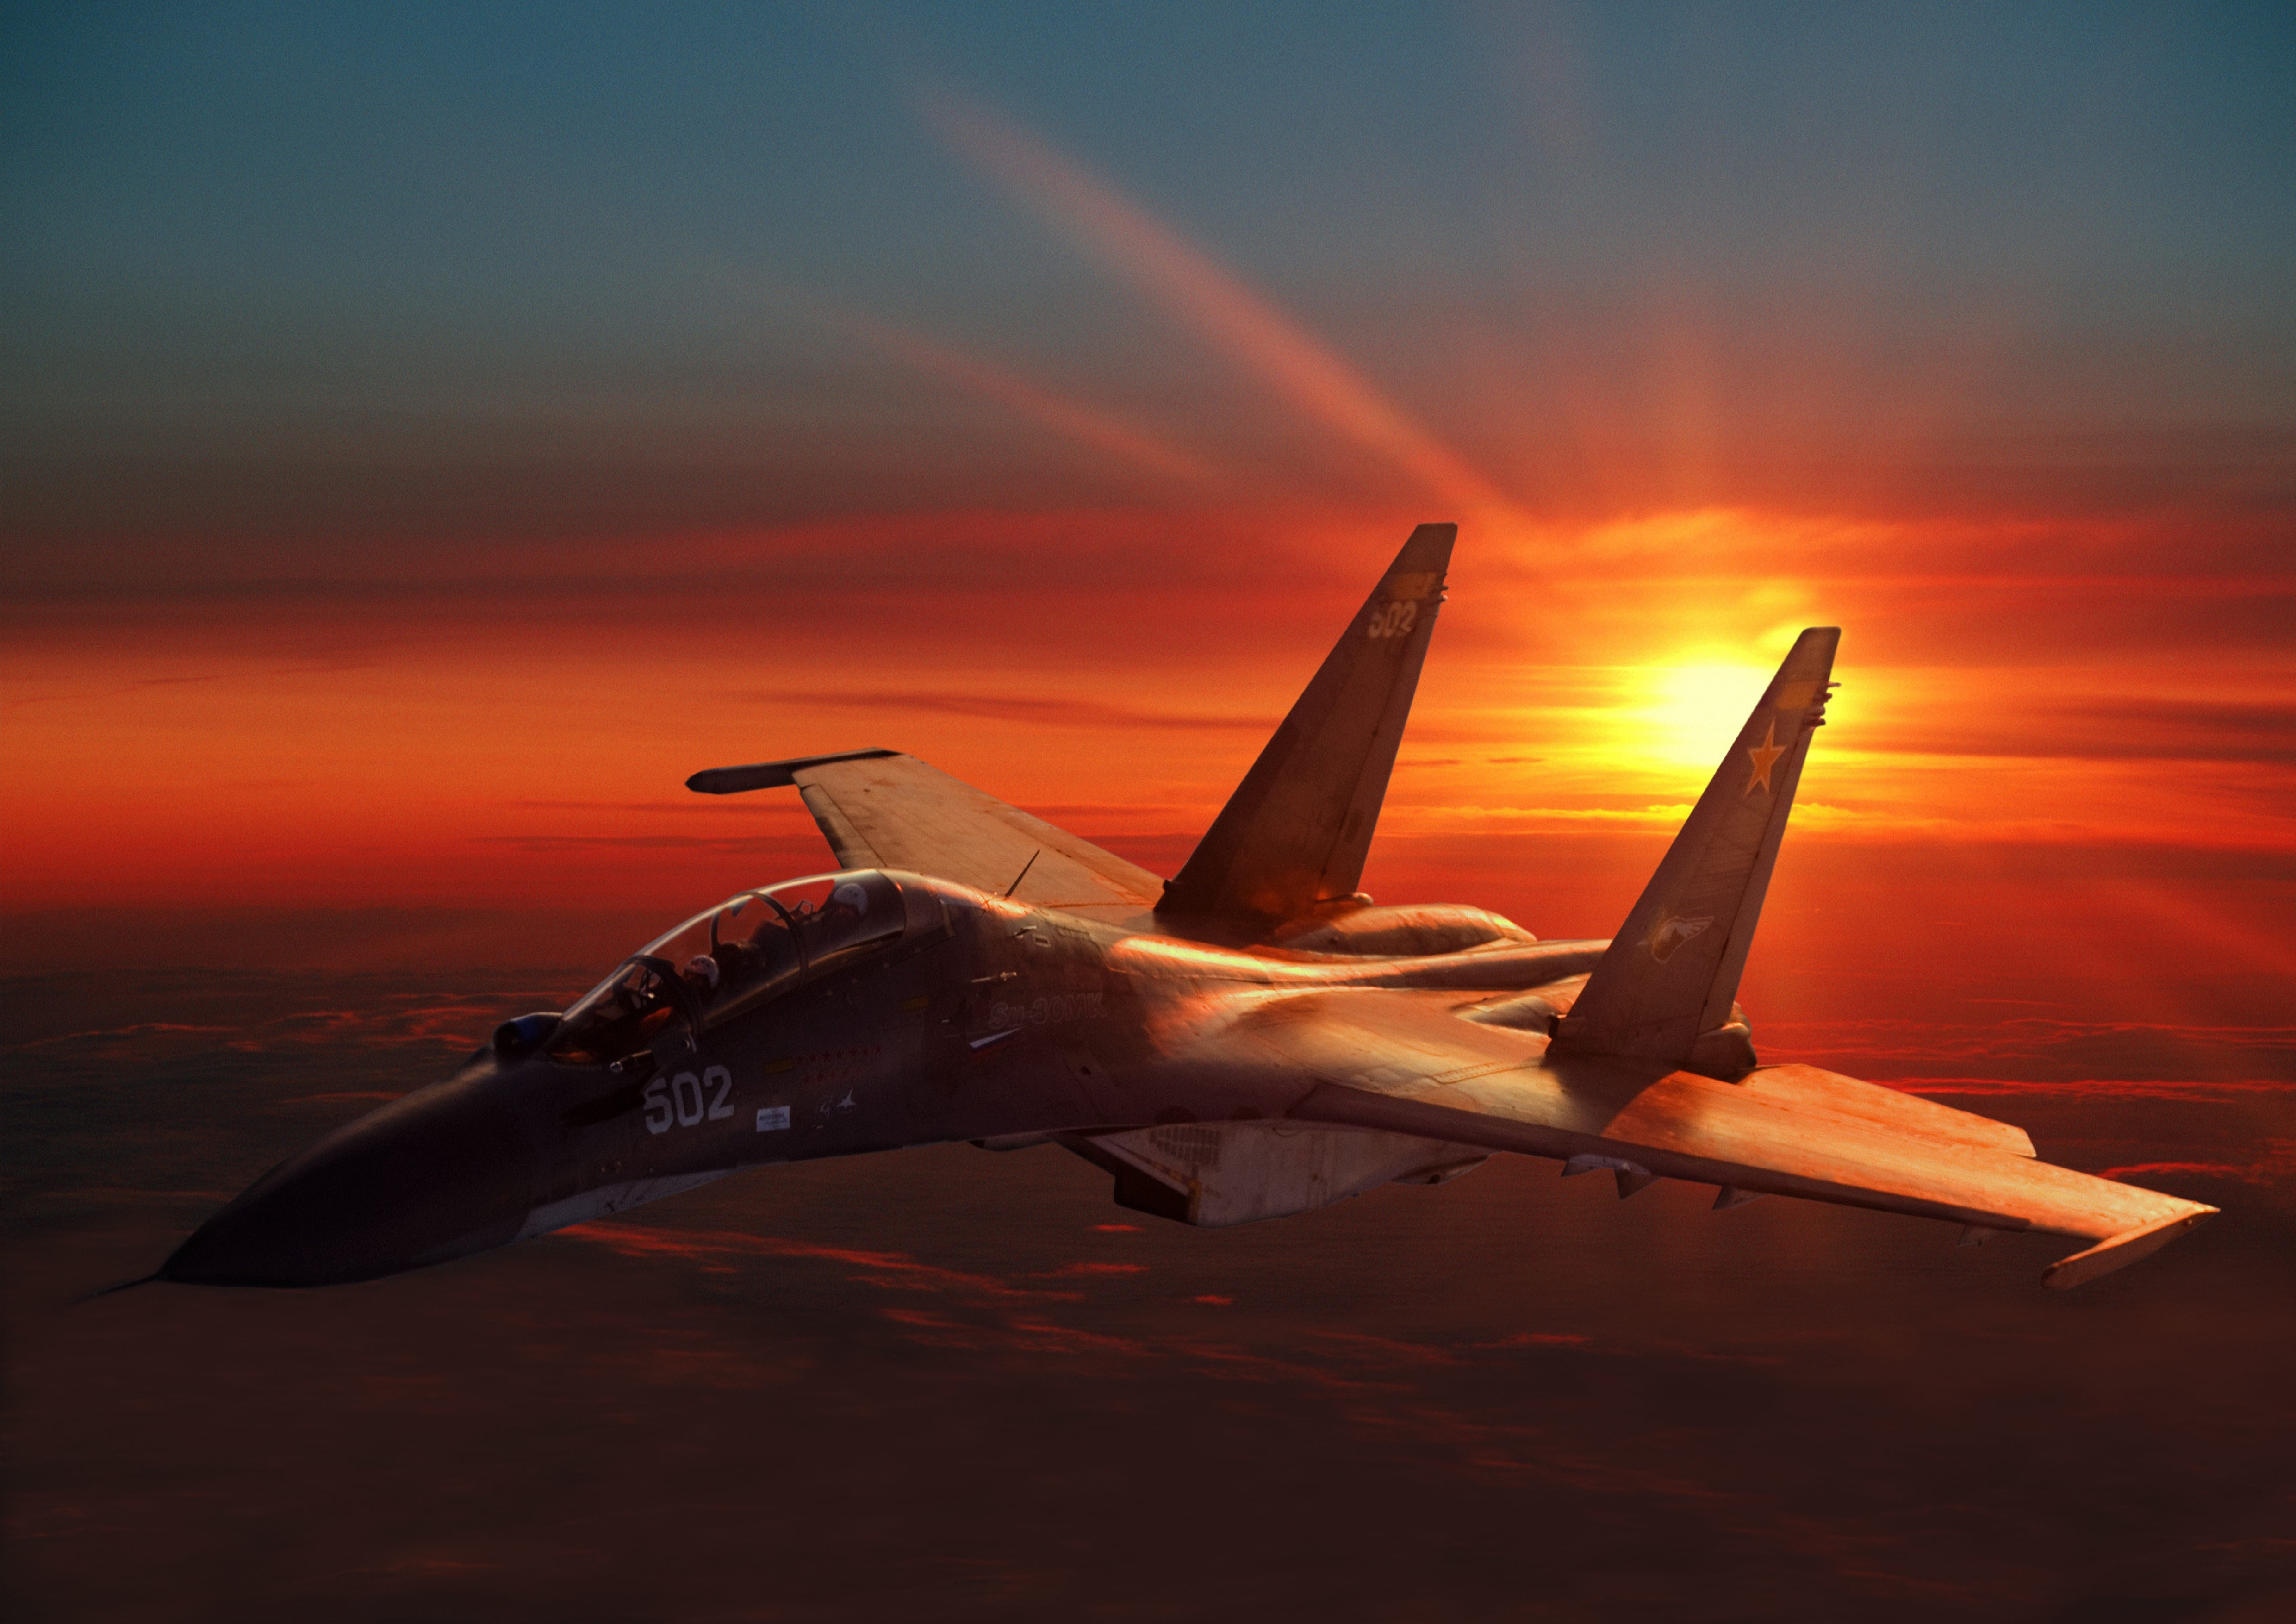 Sukhoi Su 30 Fighter Aircraft Sunset Russian Army 12252 further Dragon Ball Z Wallpaper Hd also Outer Space Galaxies Nebulae Fresh New Hd Wallpaper Best Quality Hd additionally Ferrari Motorcycle Edd34d6b5c31c437 in addition 35416. on super cool bikes hd wallpapers